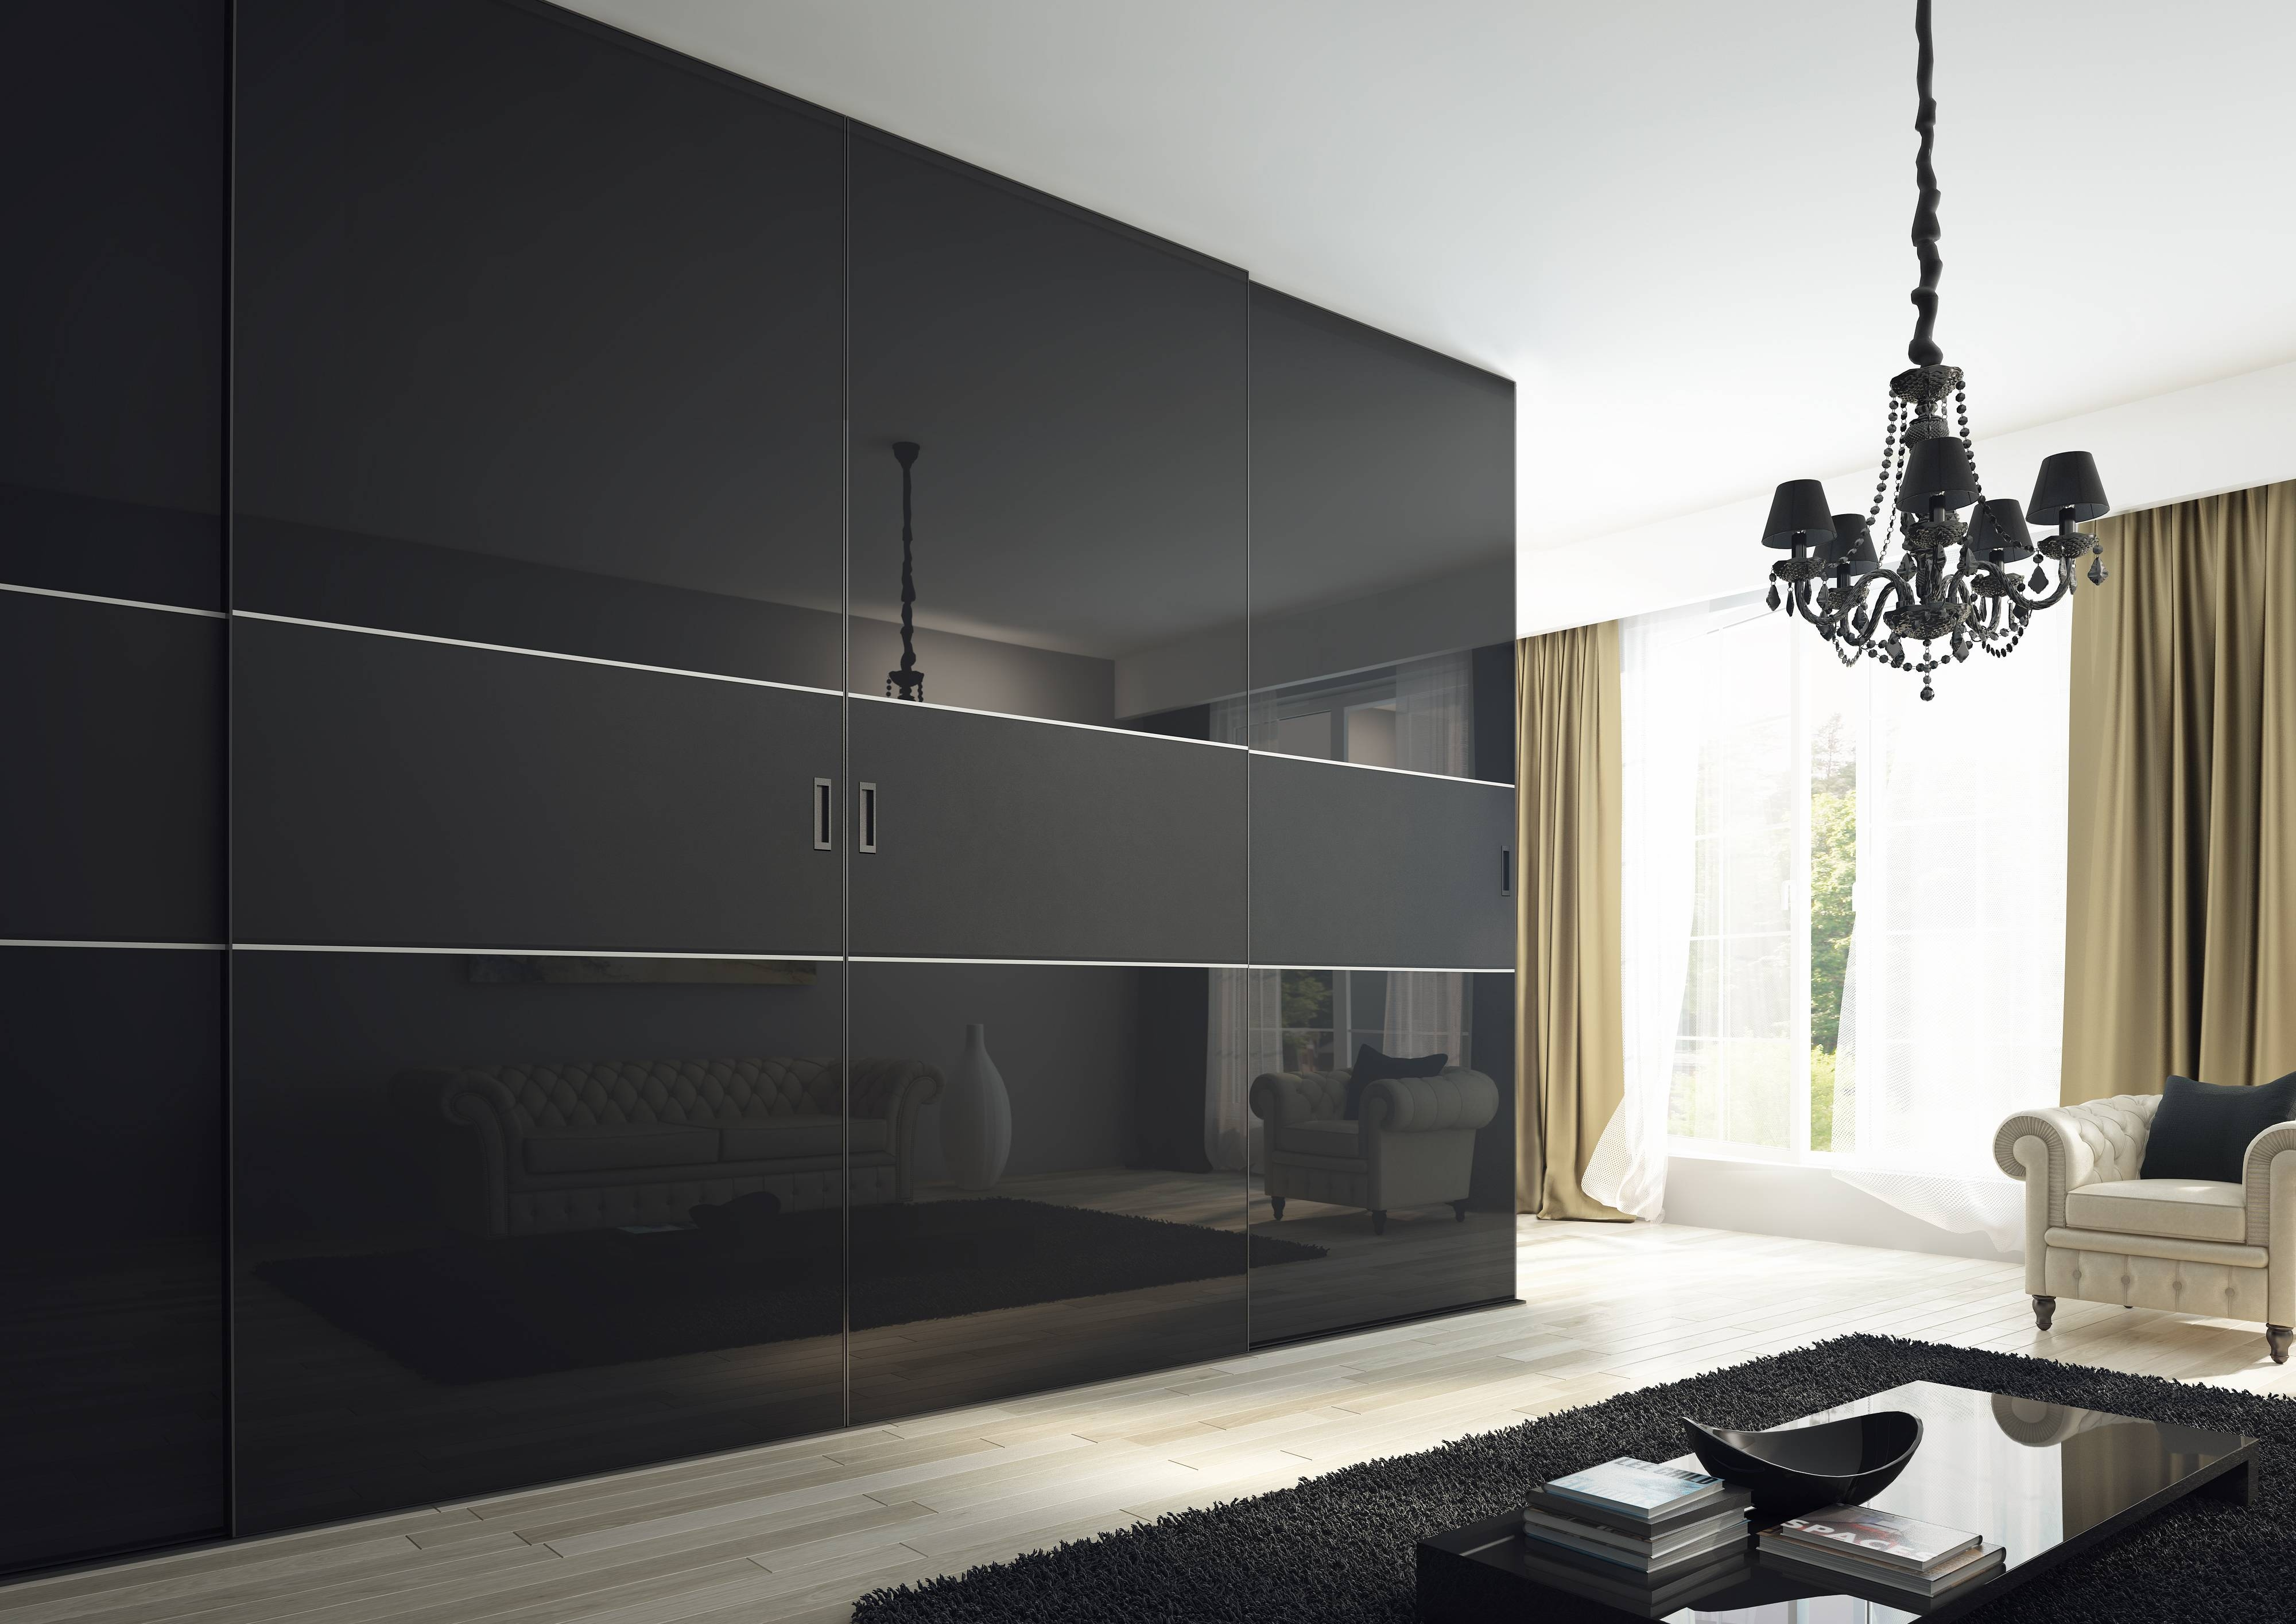 Kleiderhaus Sliding Doors And Fitted Wardrobes London with Black High Gloss Wardrobes (Image 11 of 15)